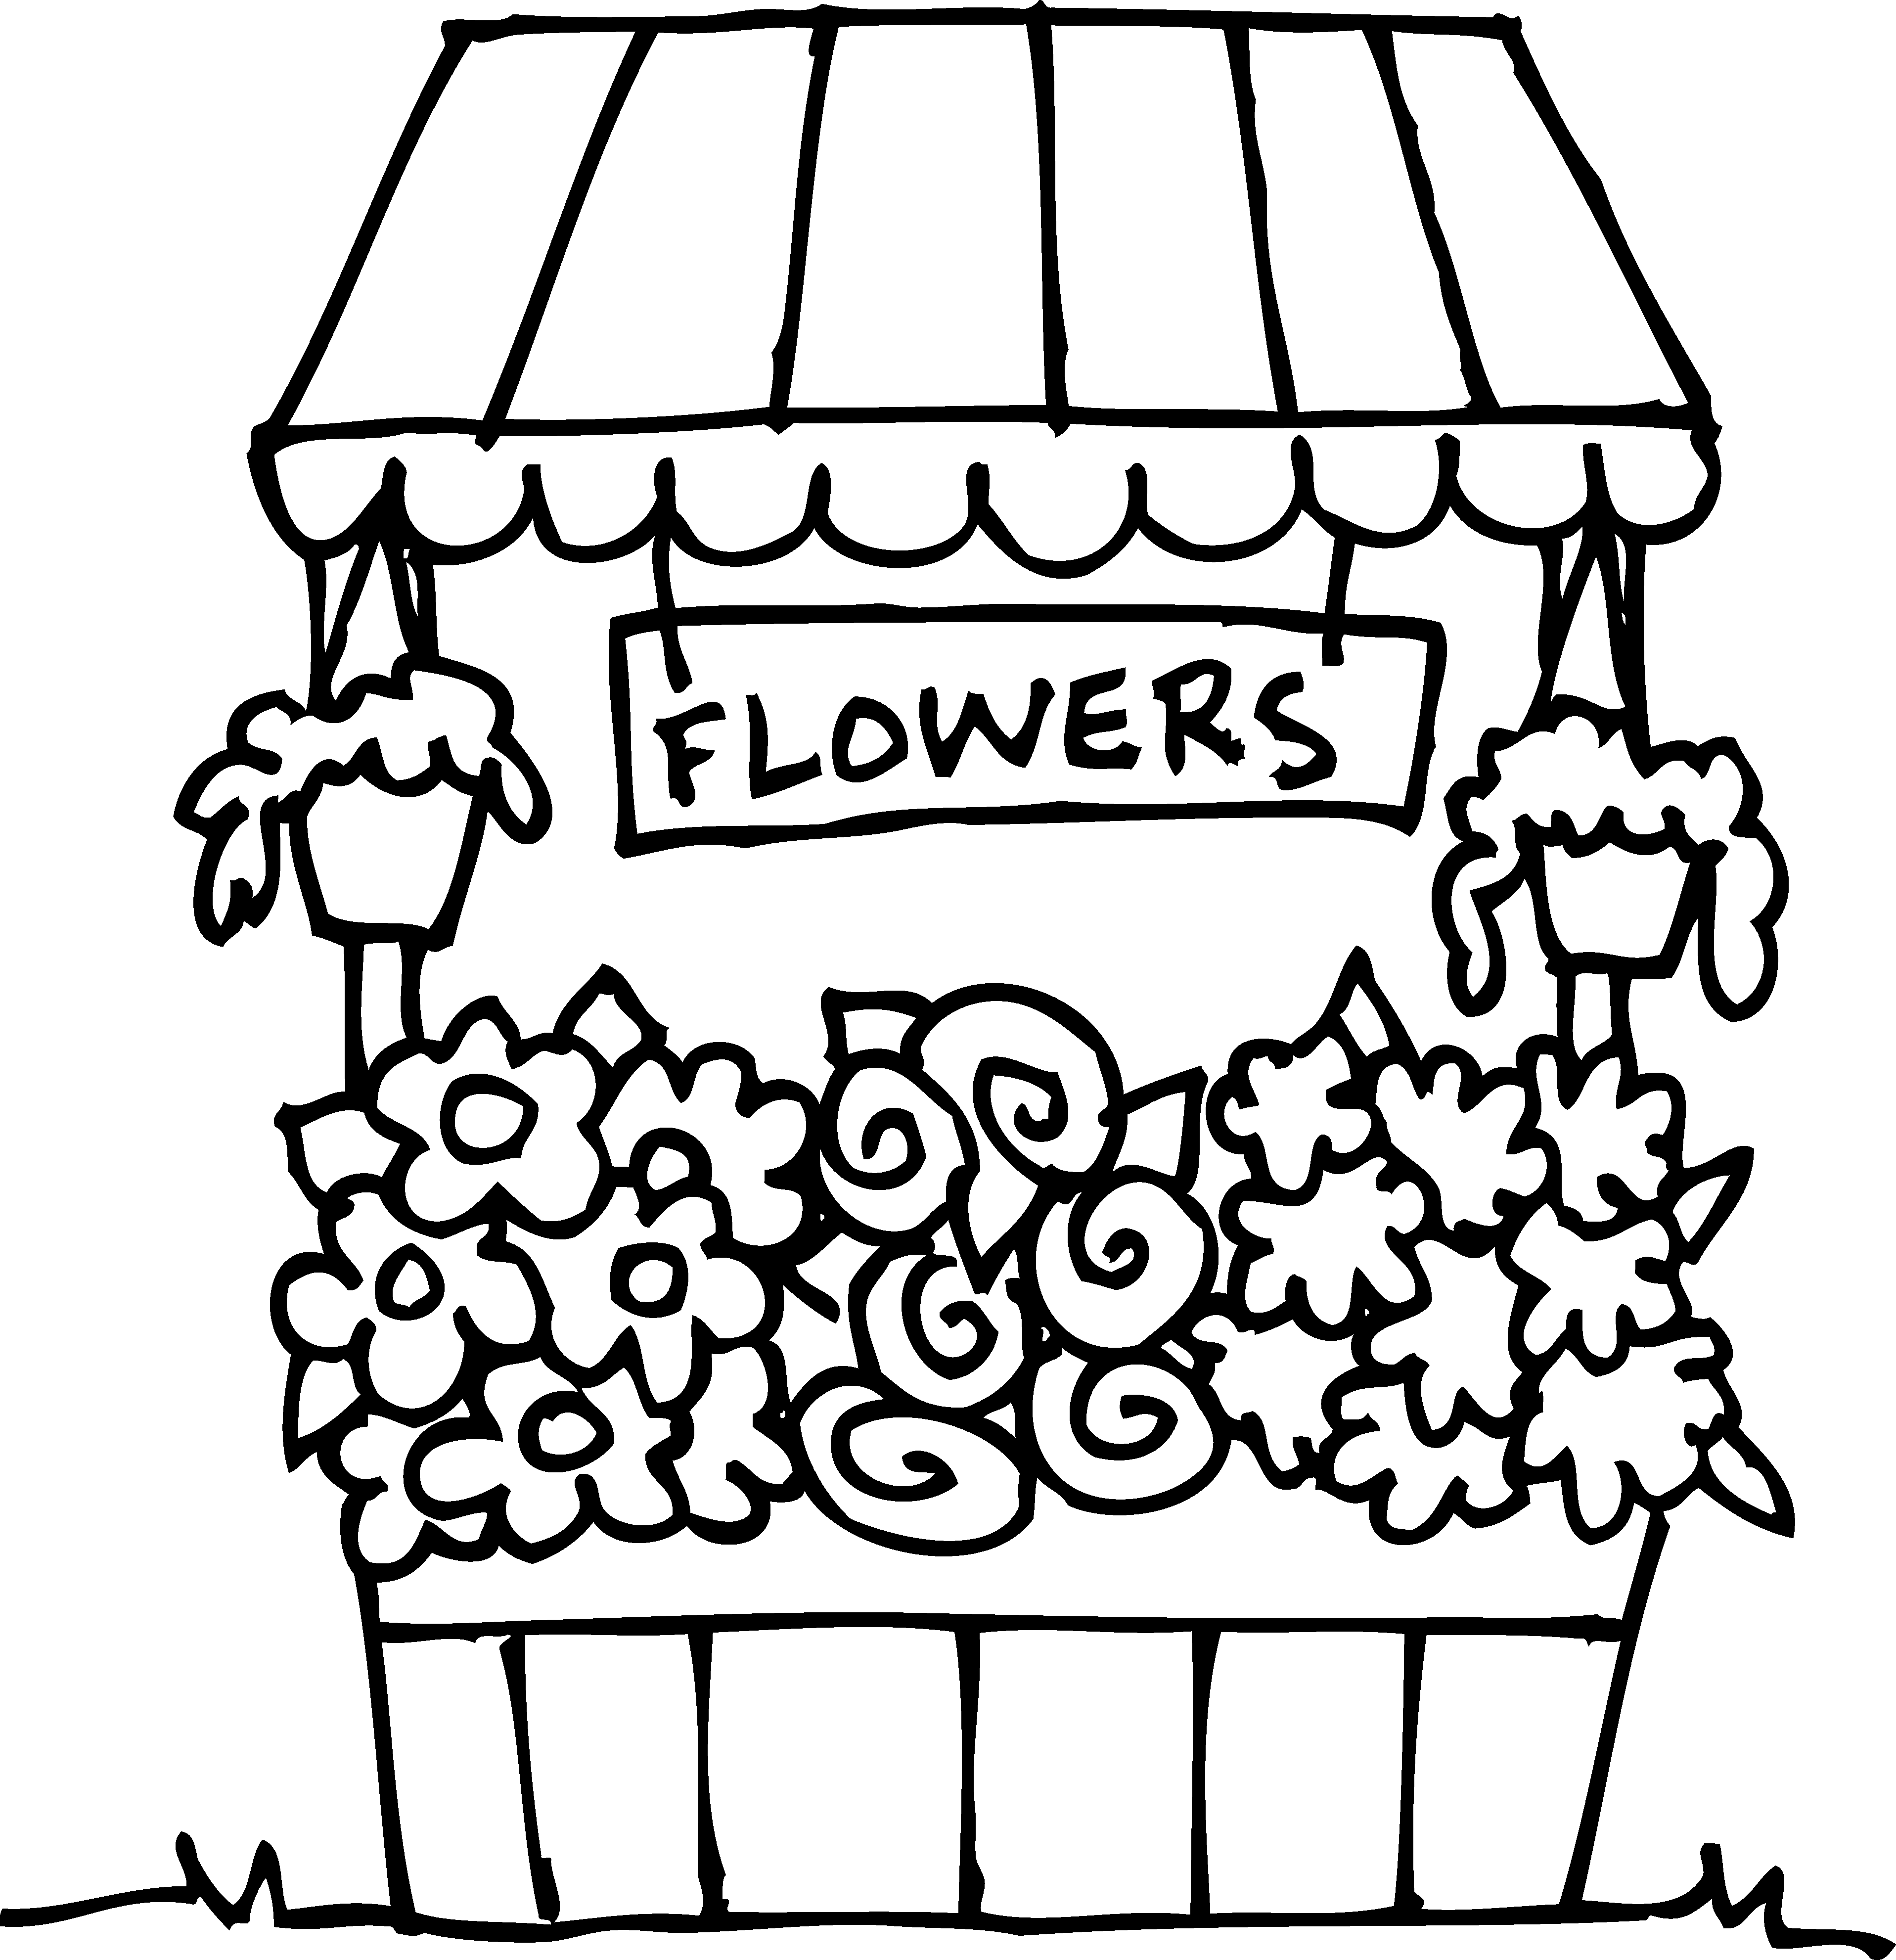 Coloring book floristry floral. Cute flower clipart black and white